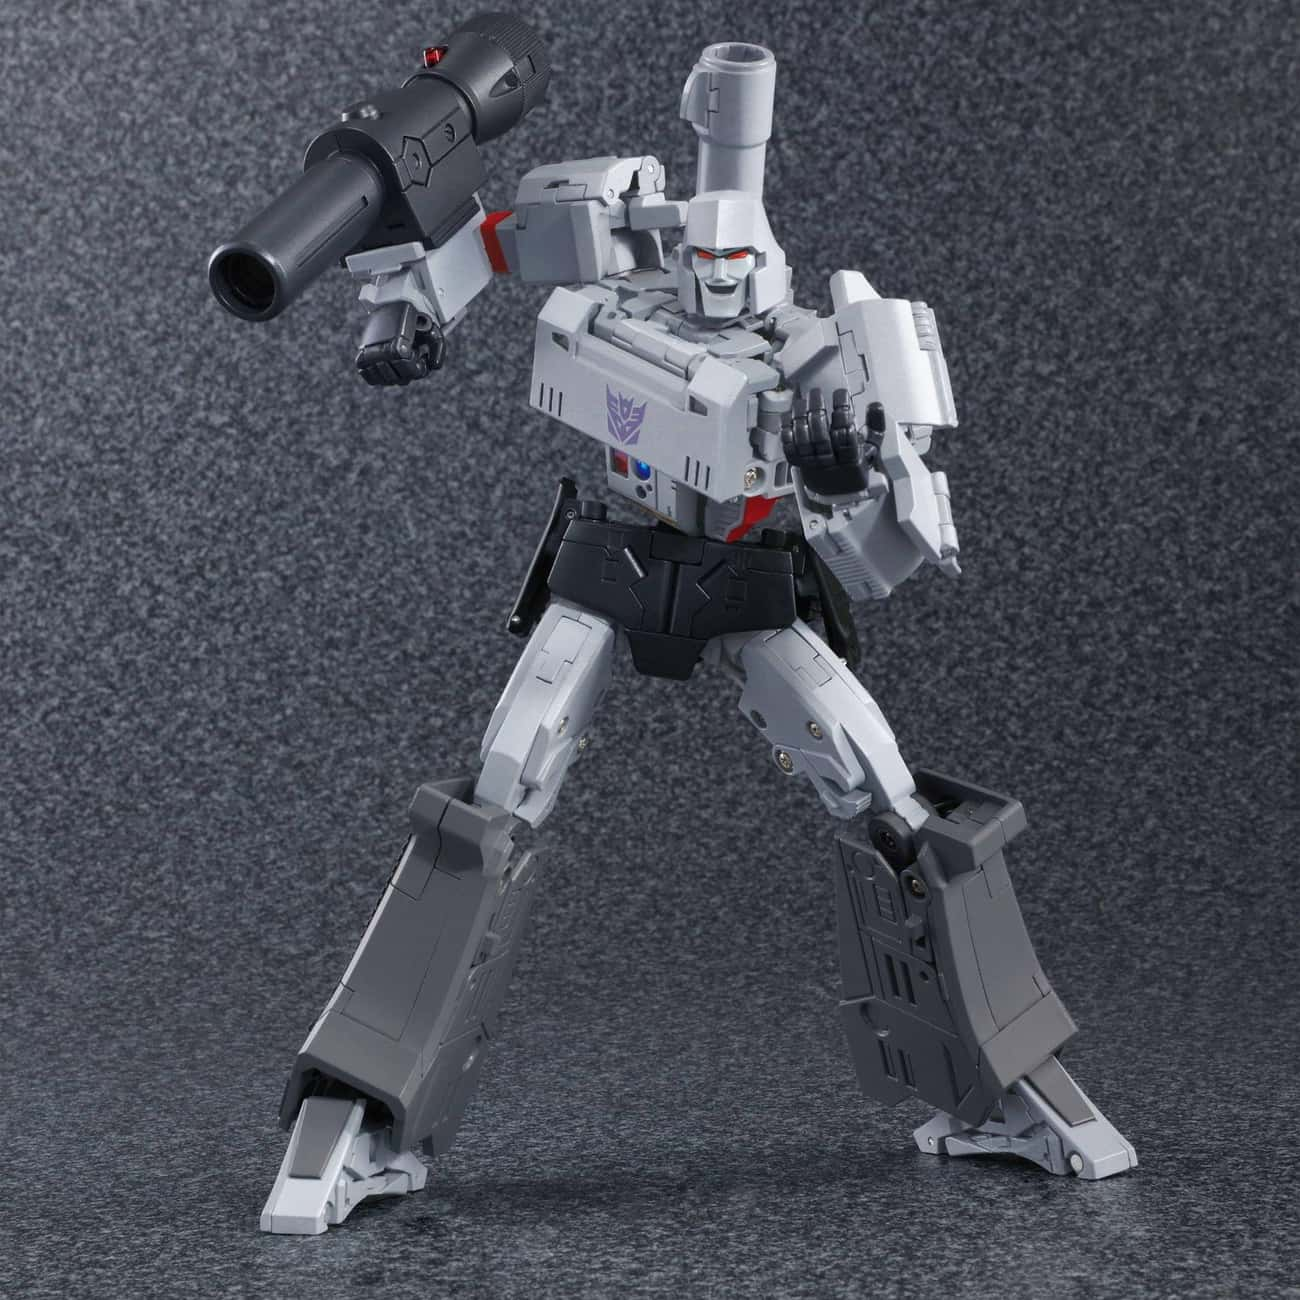 Masterpiece Megatron 2.0 is listed (or ranked) 1 on the list The 20 Best Megatron Toys Ever Made, Ranked